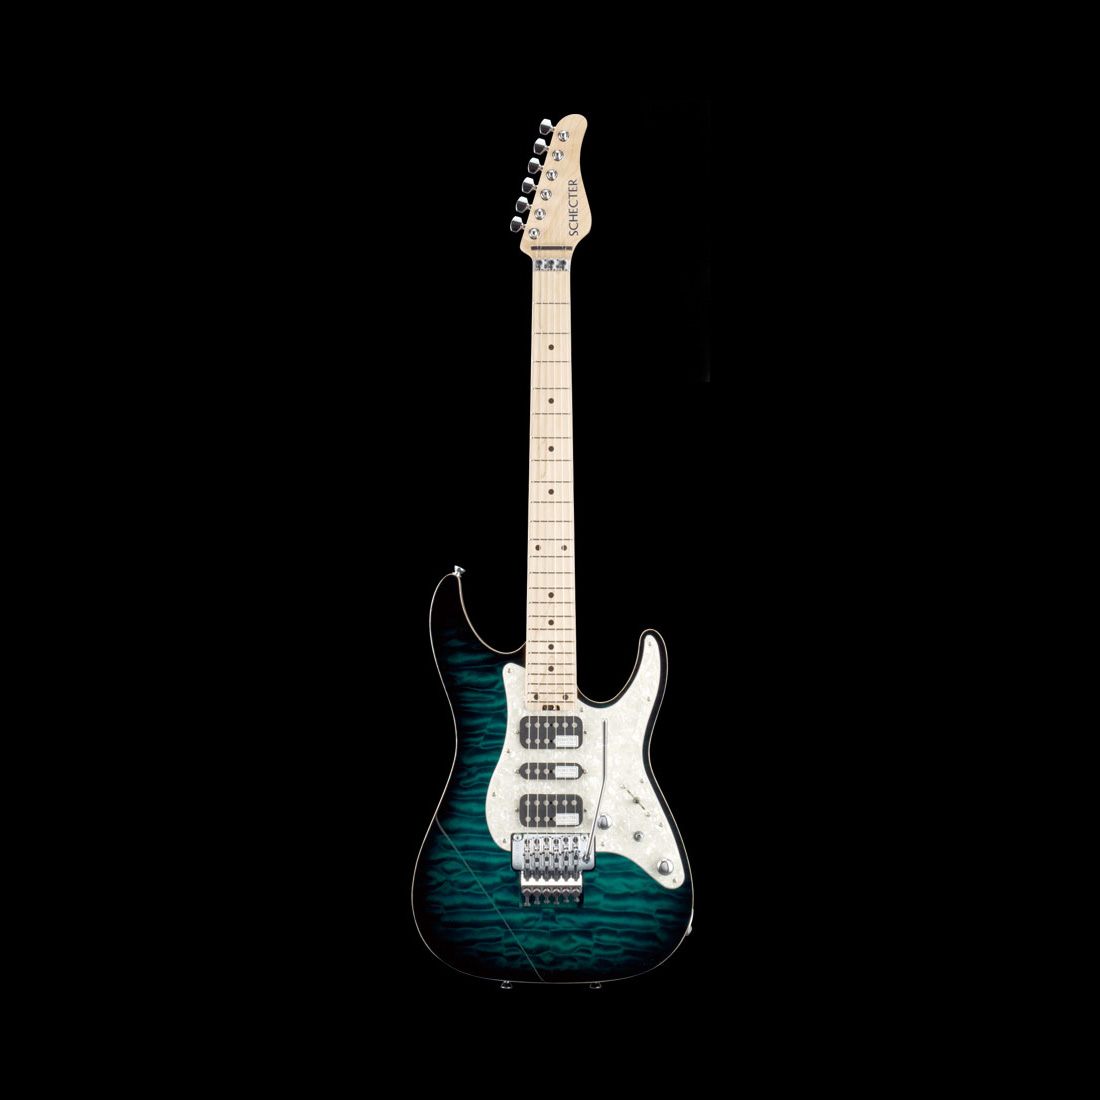 Schecter / SD-DX-24-AS-M Green Sunburst シェクター エレキギター 【お取り寄せ商品】